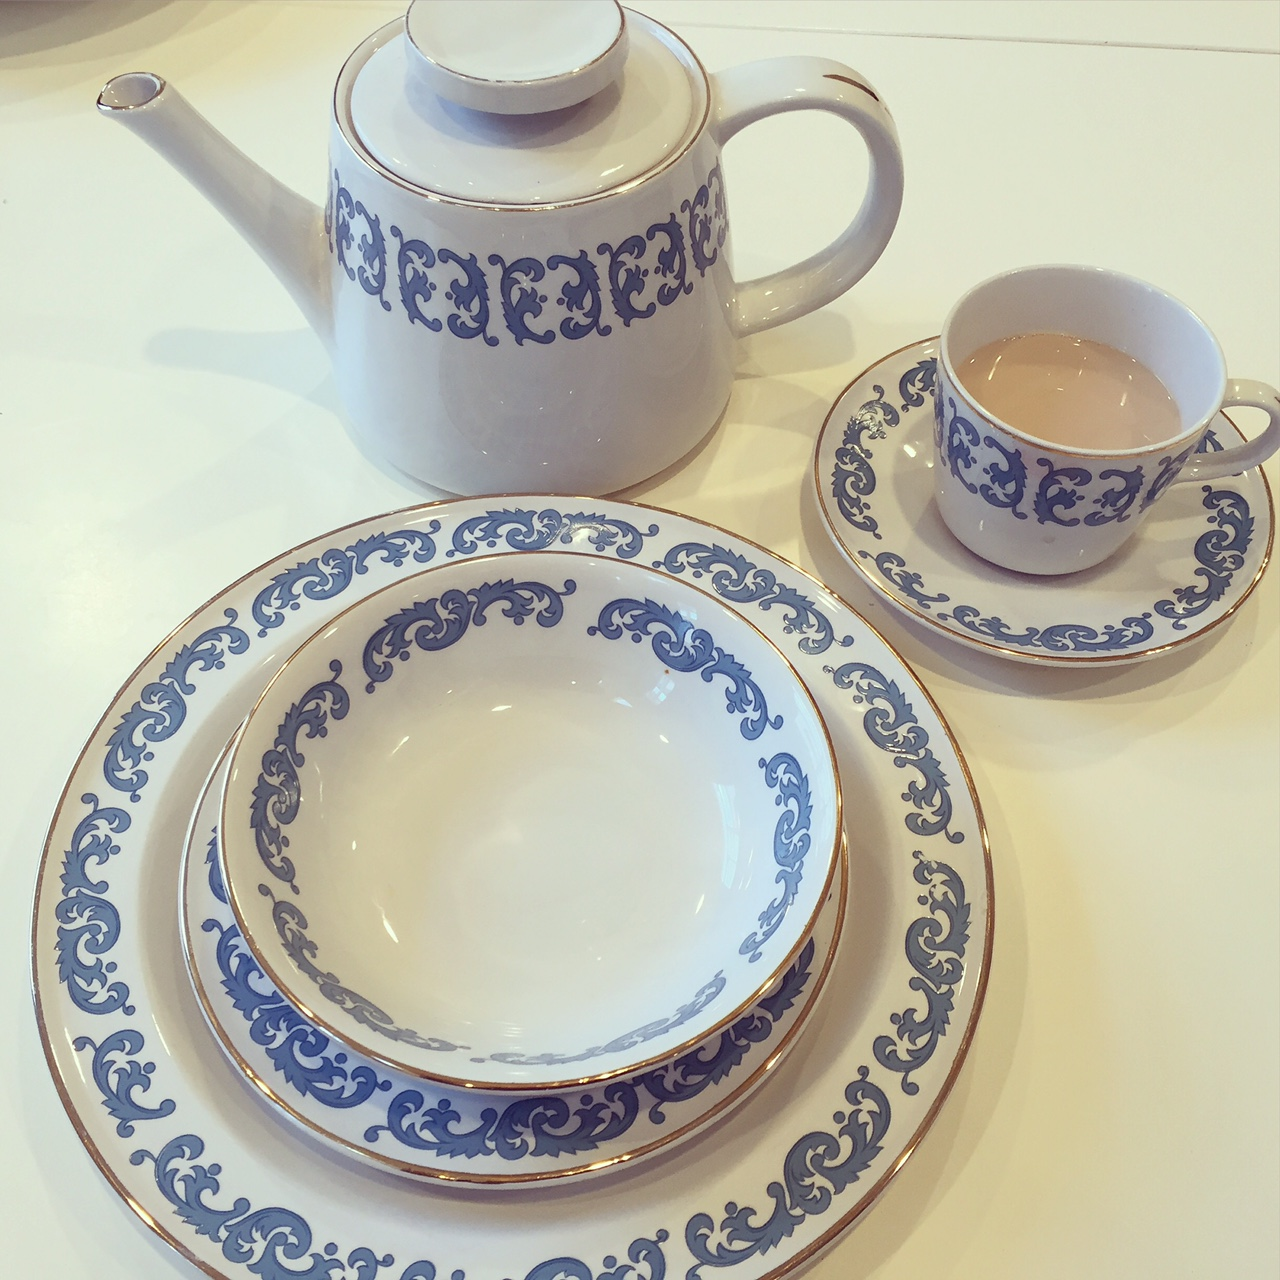 If you have a set of antique dishes I encourage you to use them on a regular basis. Not only is it fun to eat off of unique and beautiful plates ...  sc 1 st  The Daily Connoisseur - Blogger & The Daily Connoisseur: Antique Dishes vs. New Dishes (Portion Size)